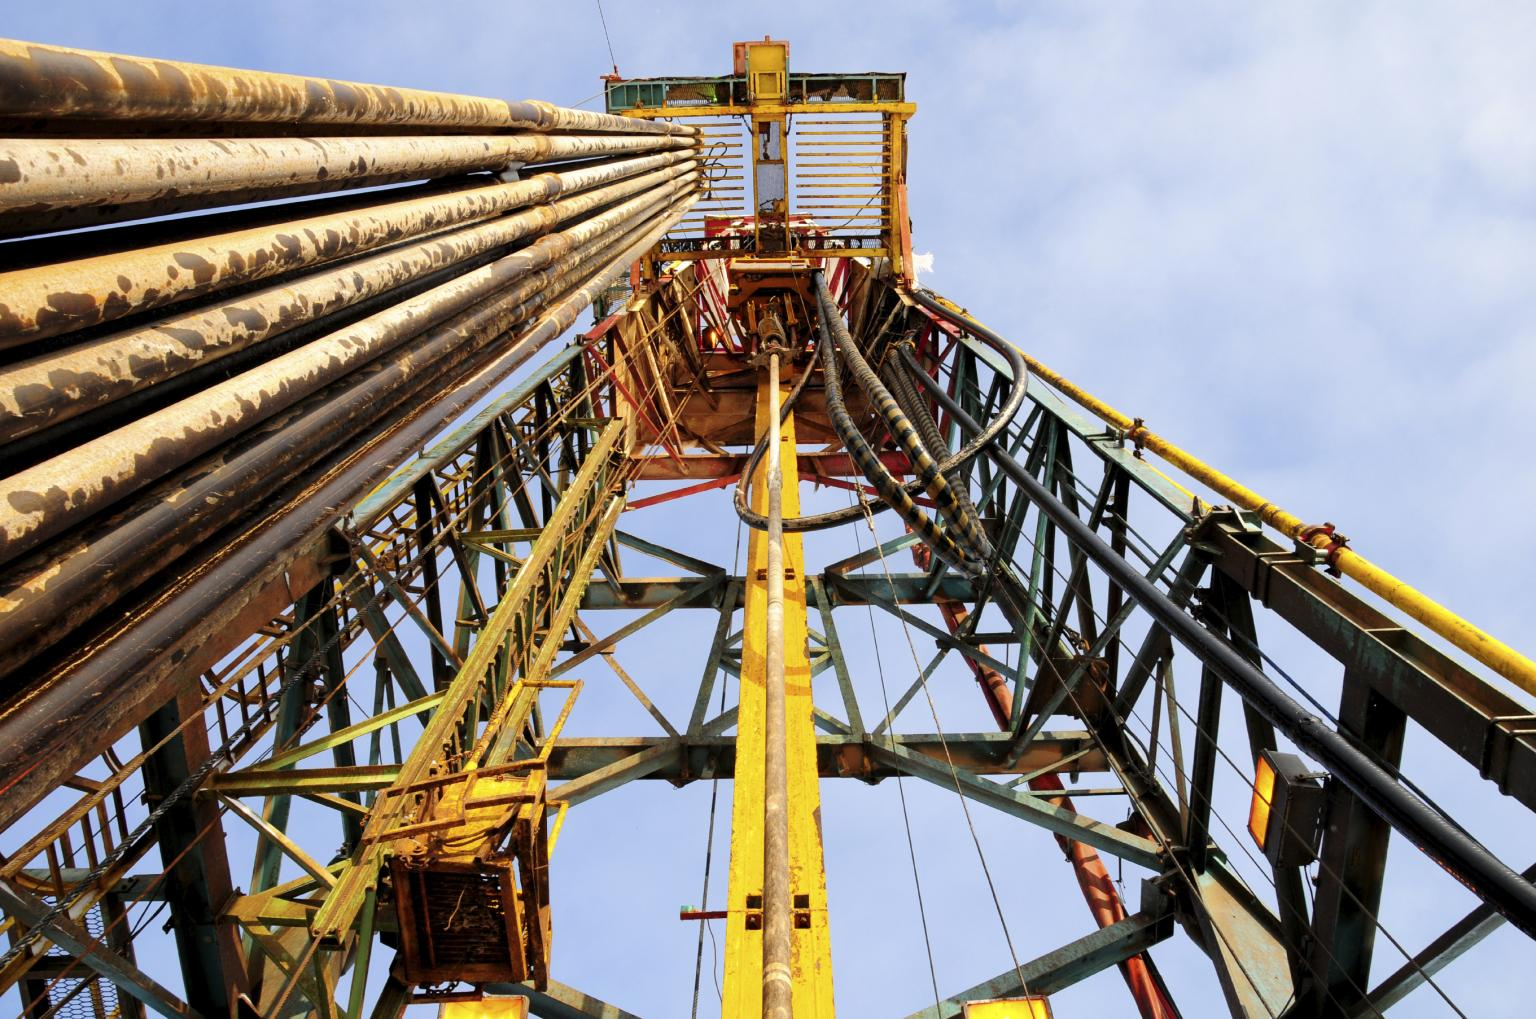 Siemens helps its customers solve connectivity issues at every step of the drilling process